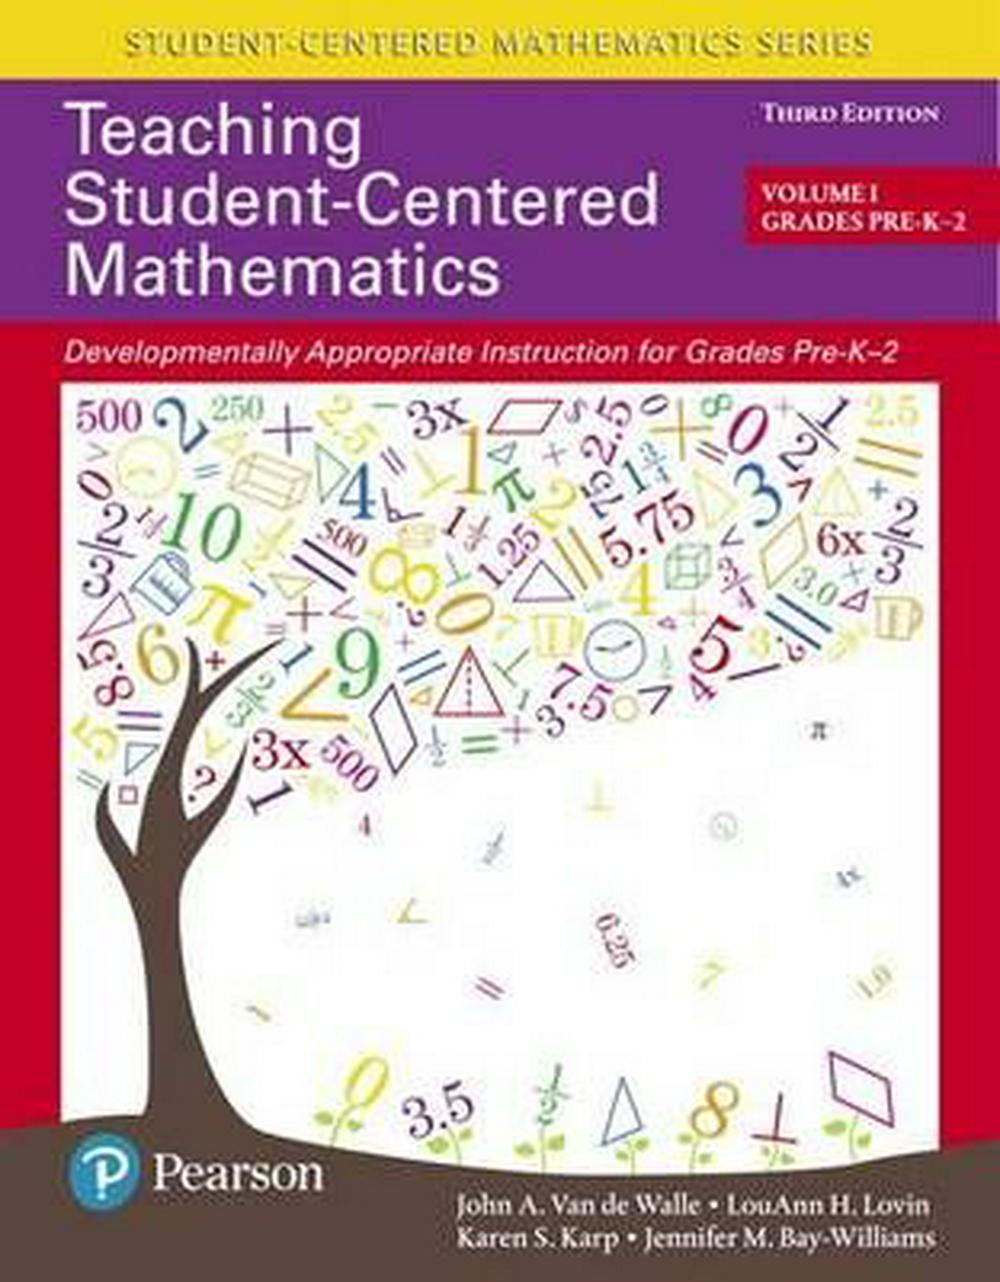 Teaching Student-Centered Mathematics: Developmentally Appropriate Instruction for Grades Pre-K-2 (Volume I): 1 by John a Van De Walle, ISBN: 9780134556437